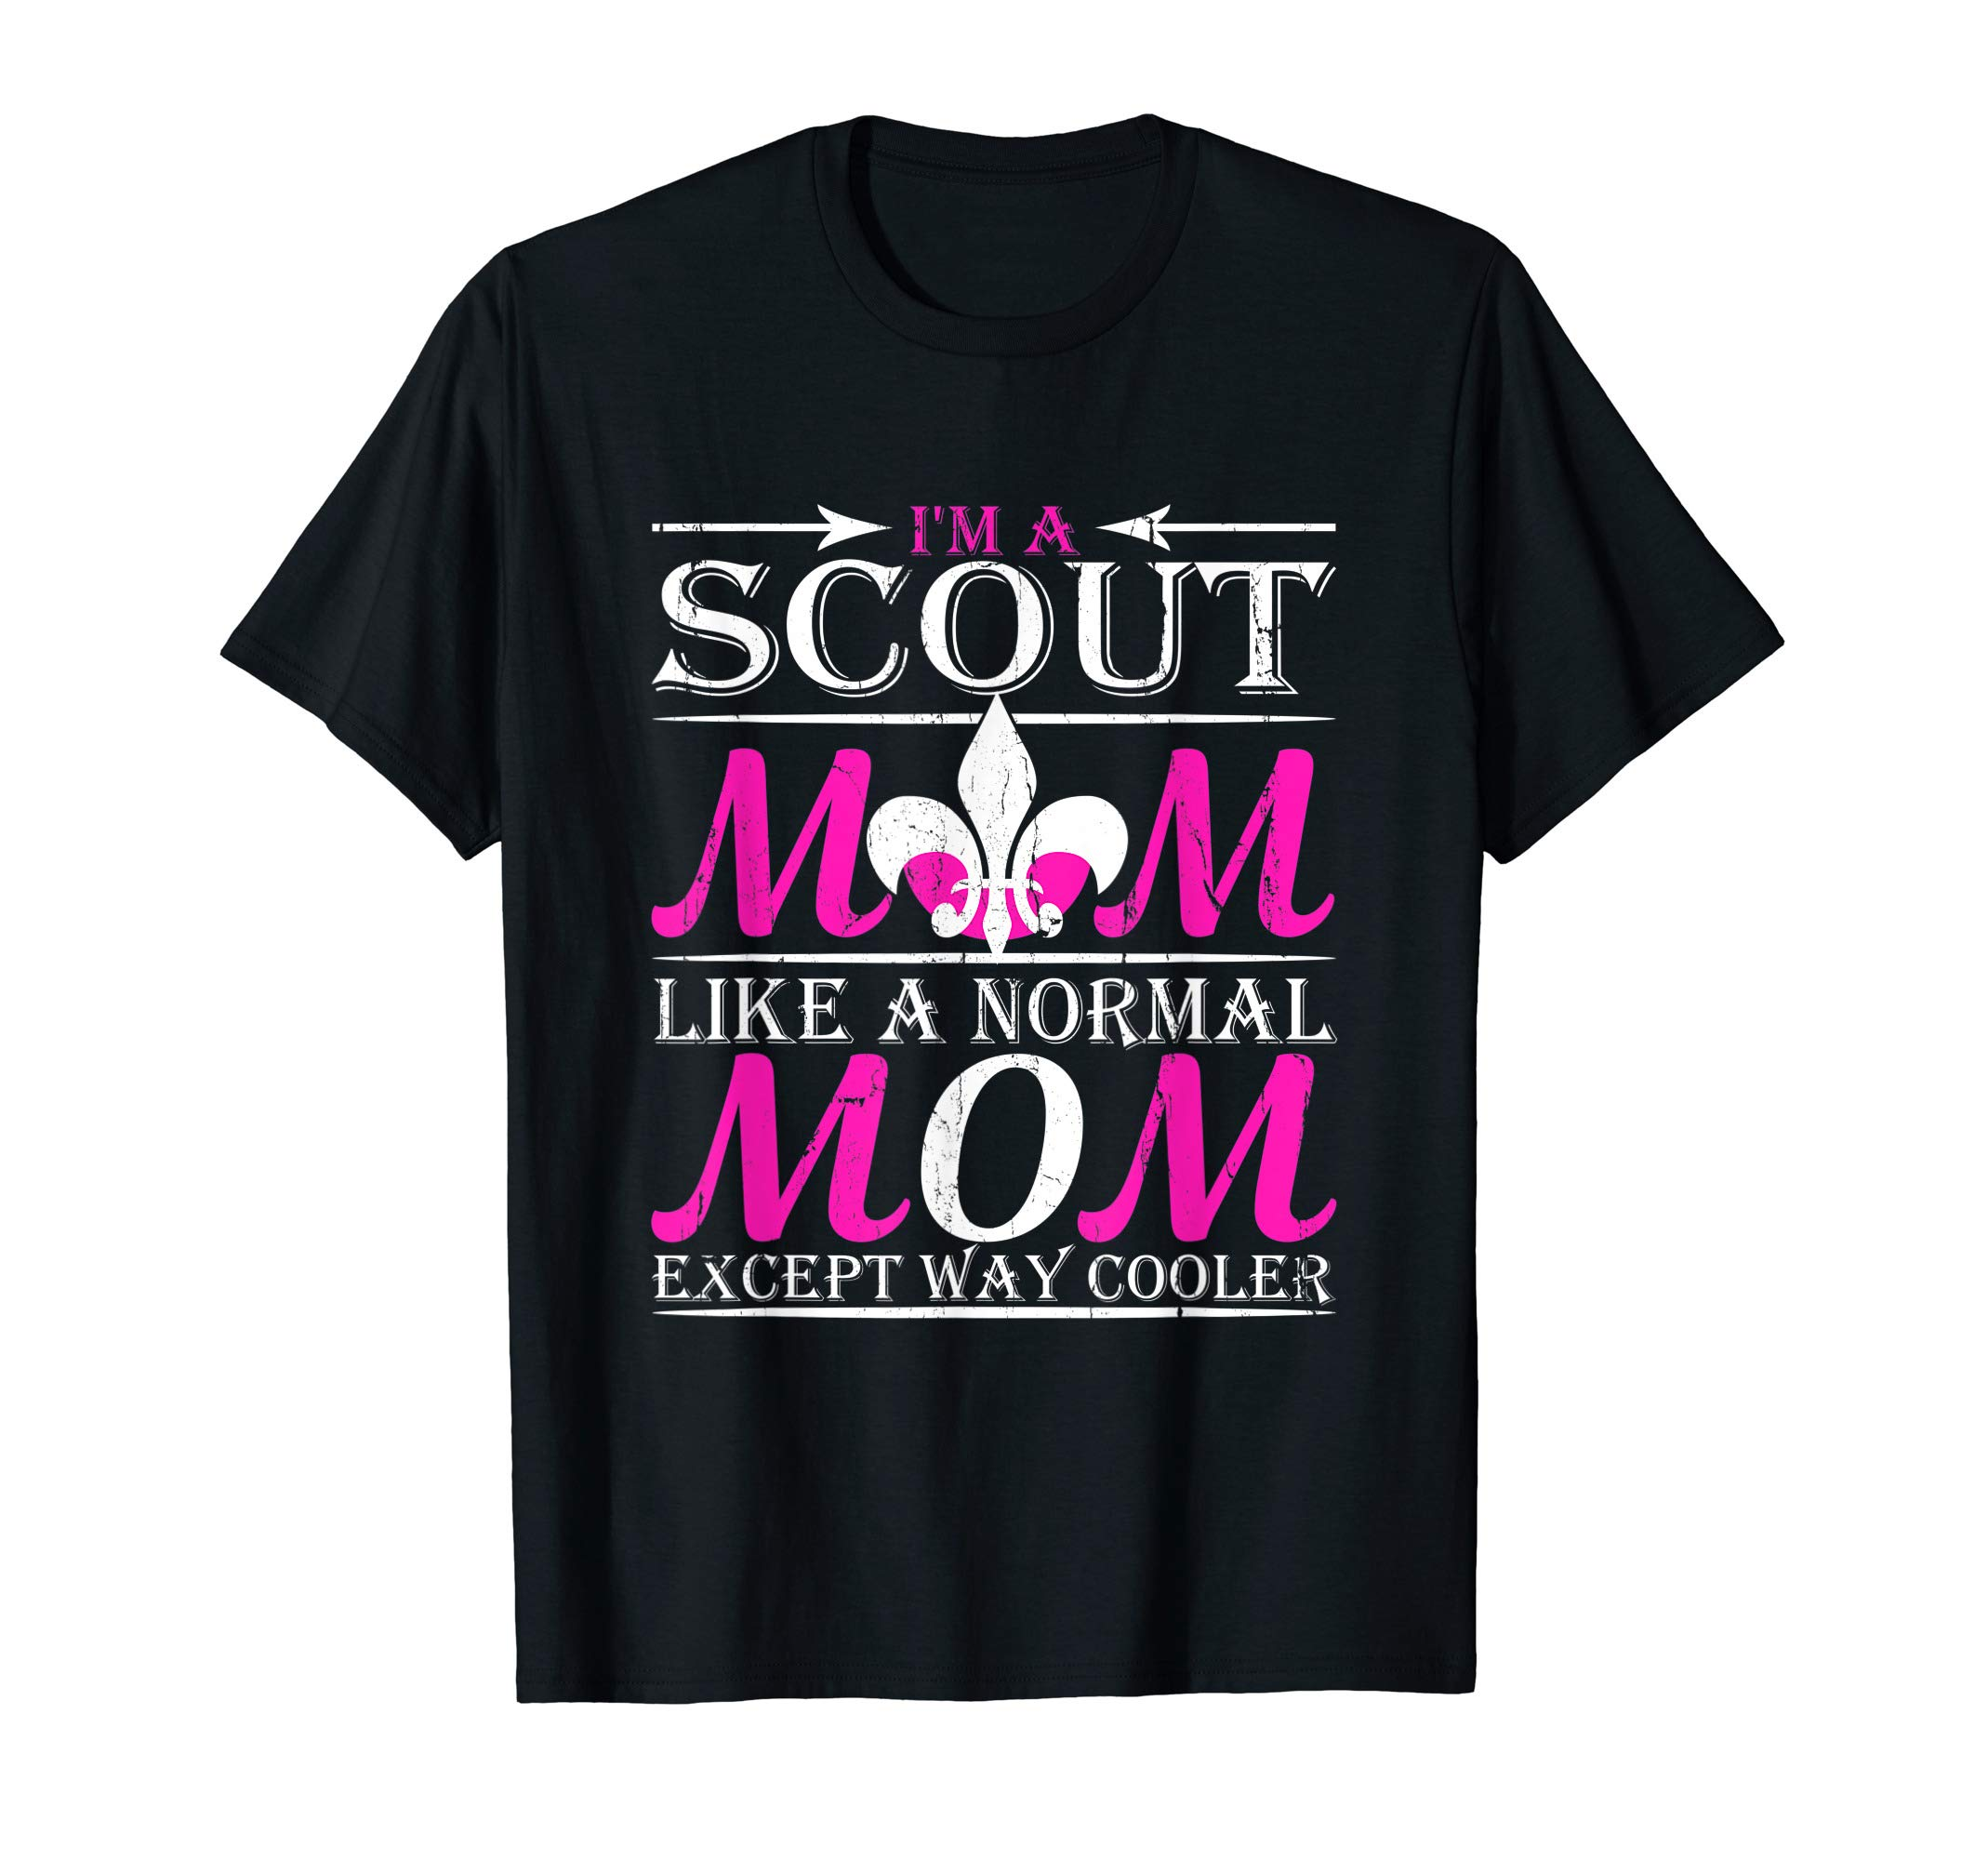 Scout Mom Cub Outdoors Boy Troop Leader Scouting Women Gift T-Shirt by Scouting Designs By Ark